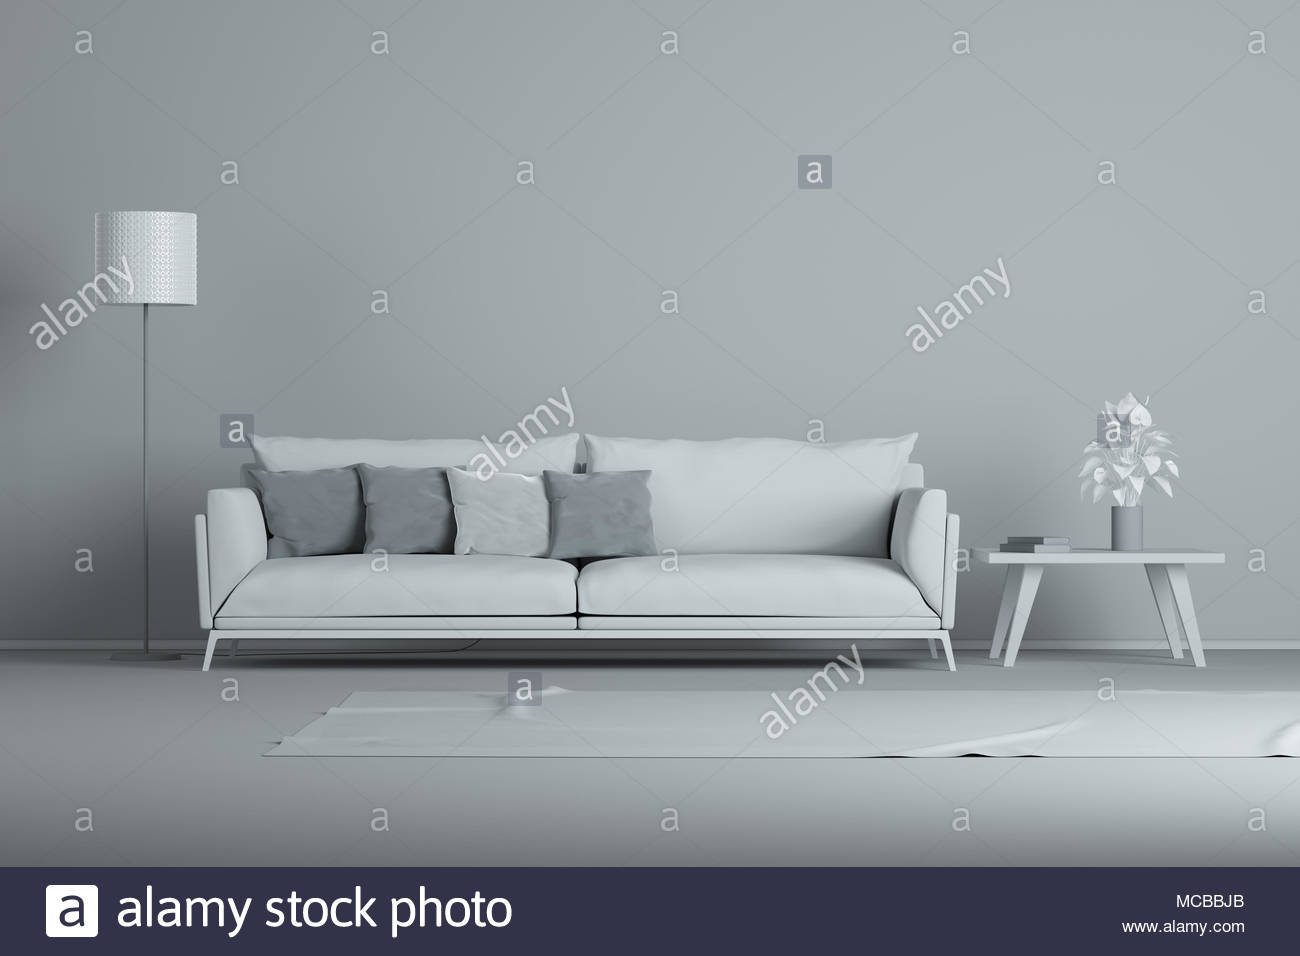 minimal sofa design four hands reviews white interior style concept gray modern in living room